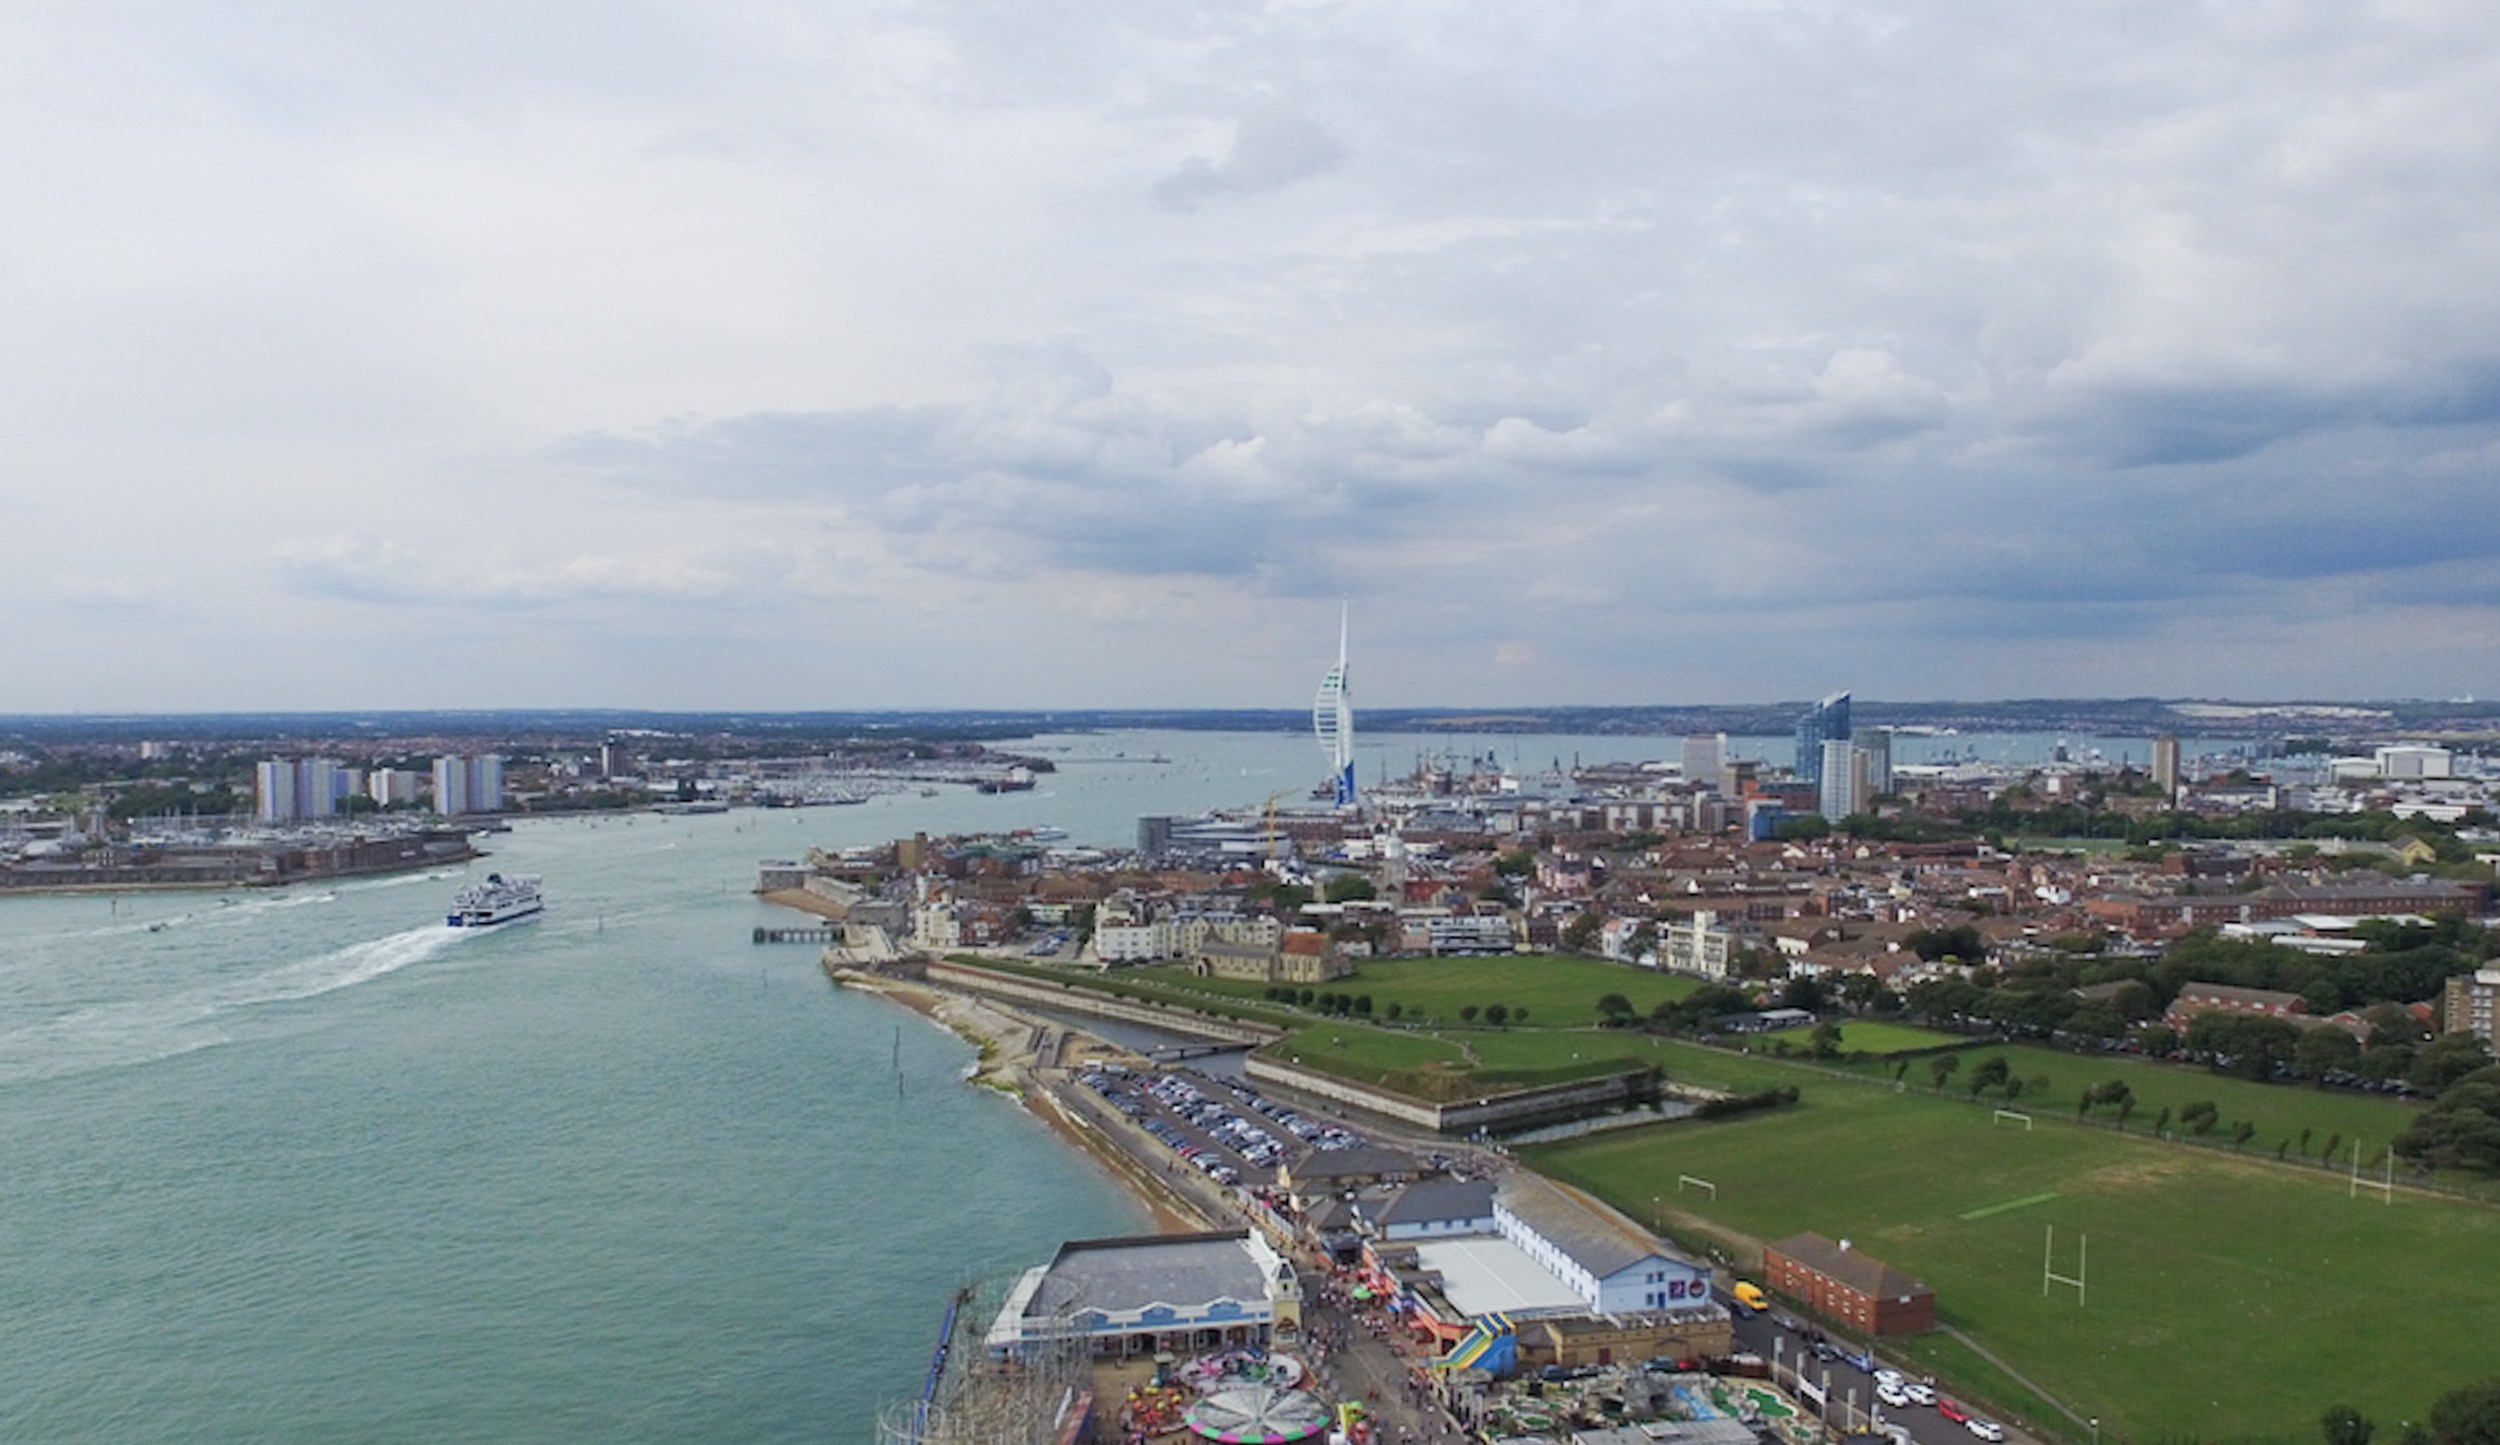 Spinnaker Tower added to UK rough guide of most accessible attractions